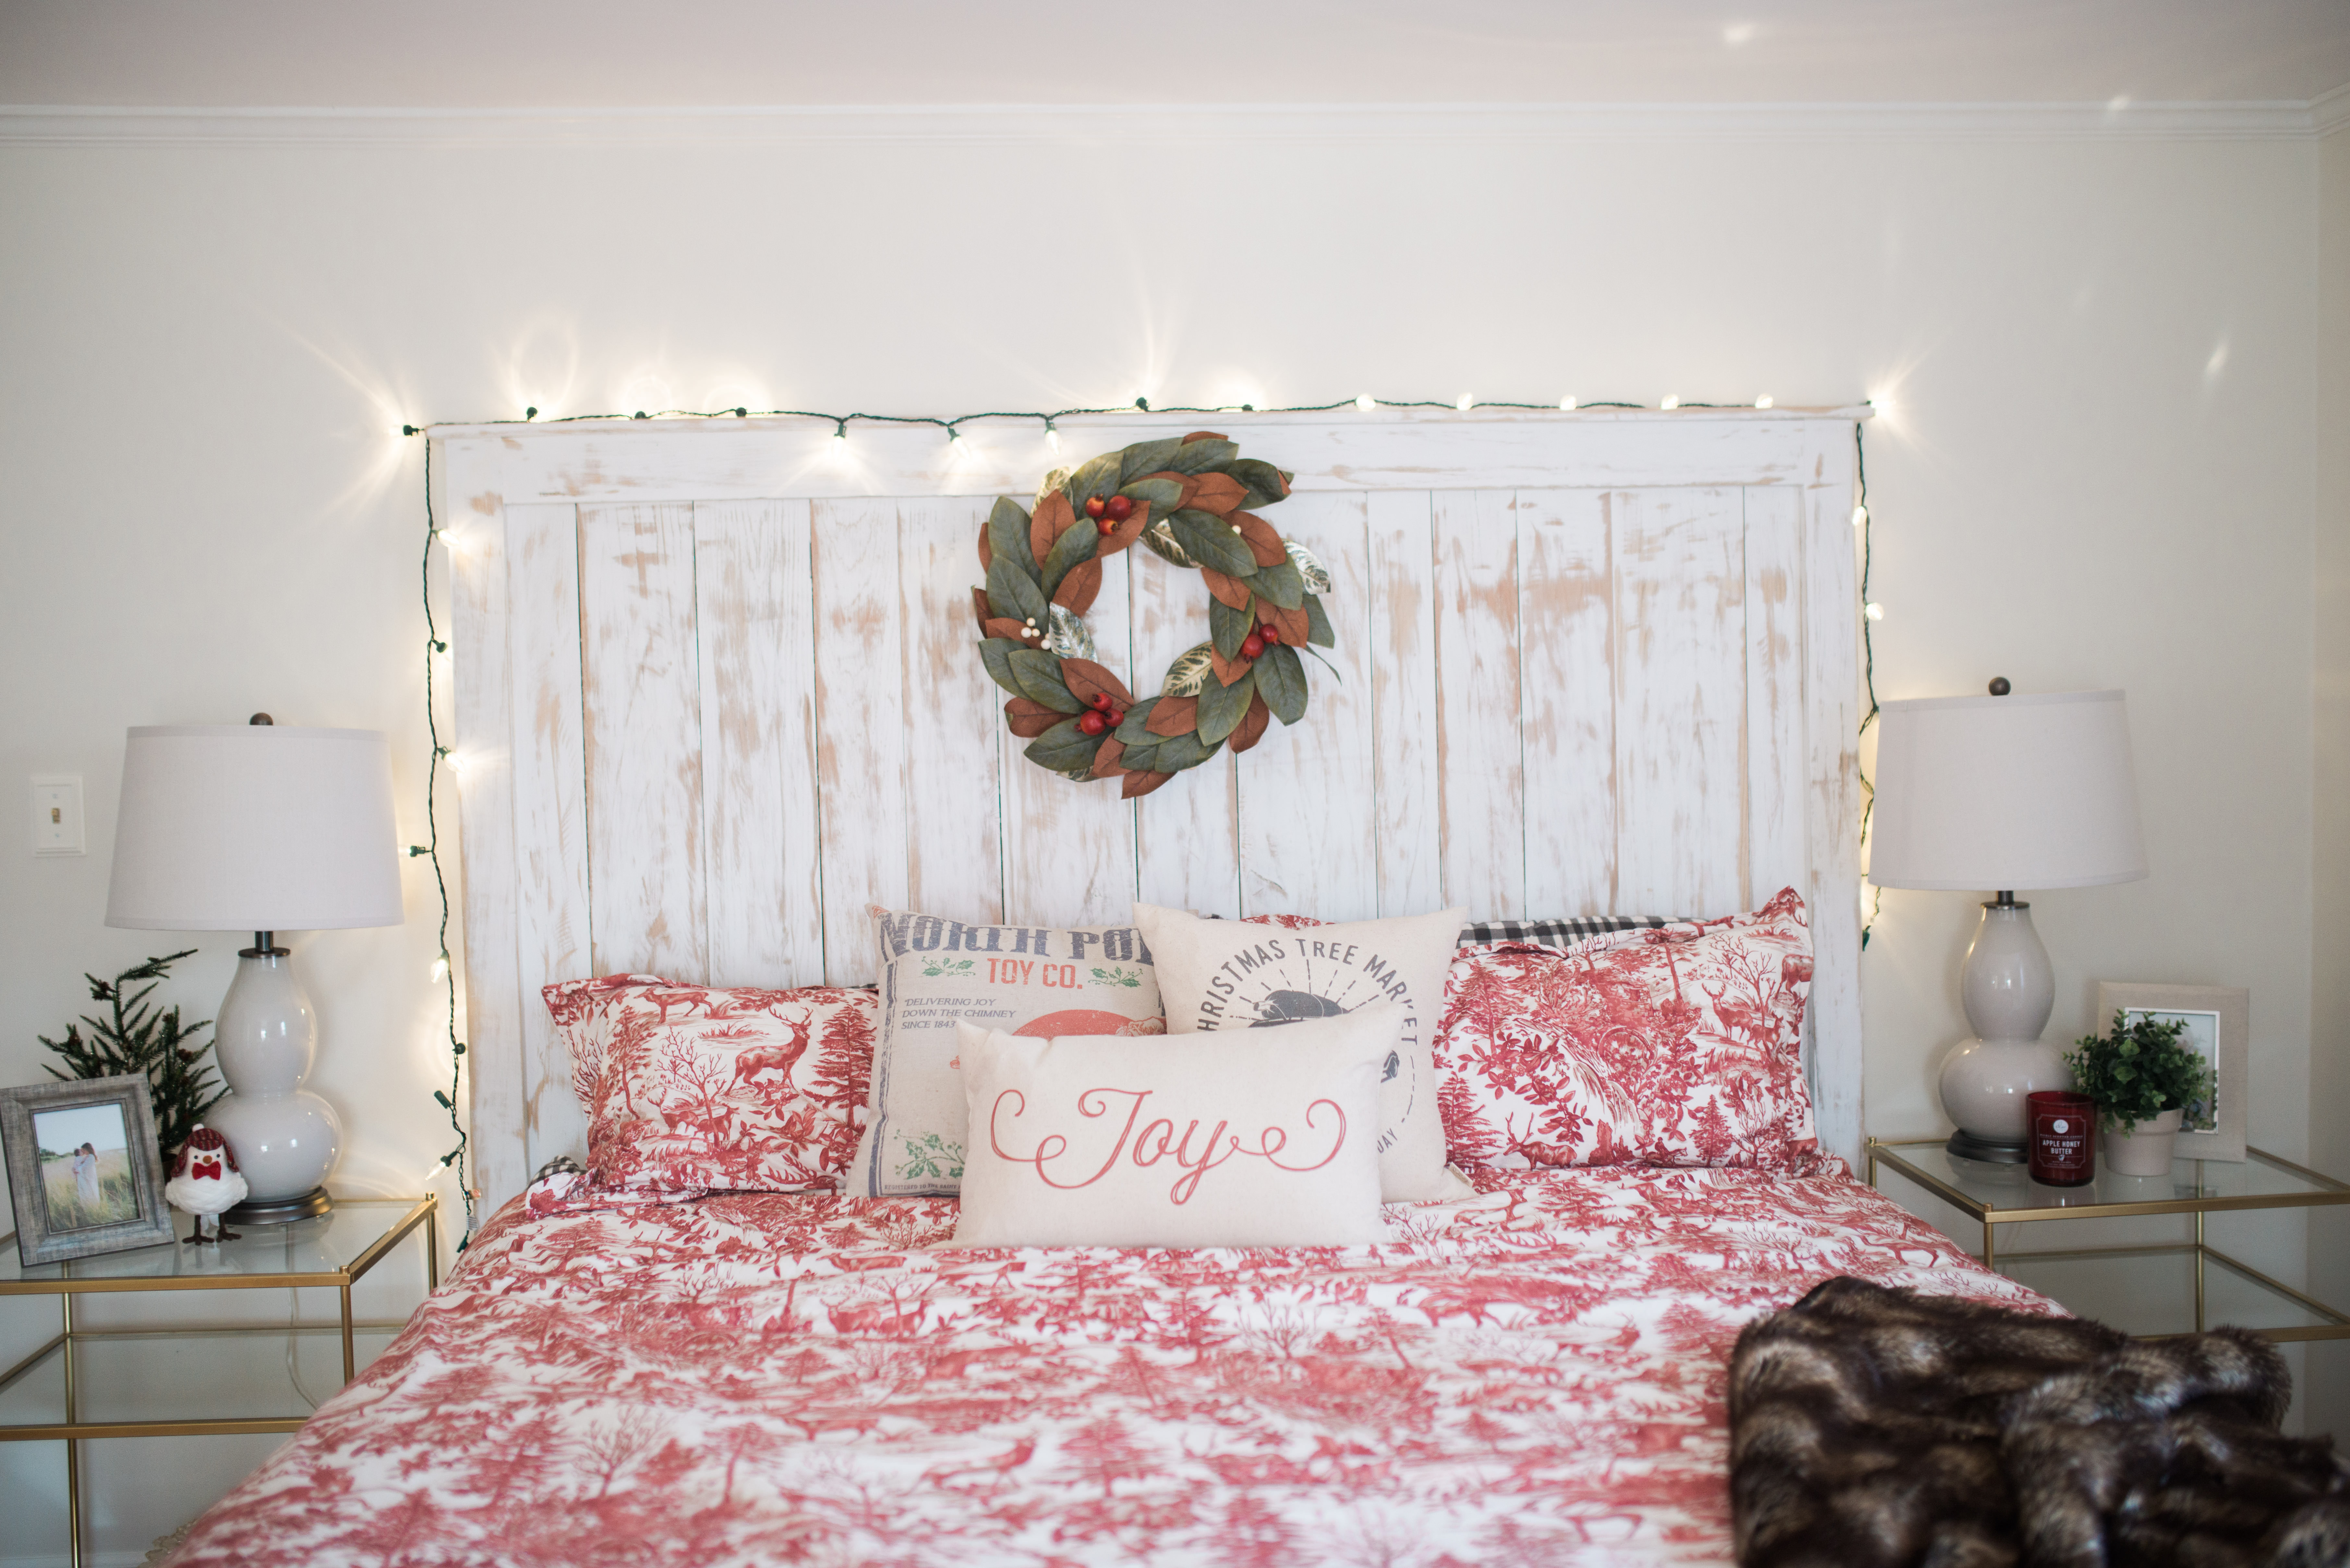 Best ideas about Wall Decor For Bedroom . Save or Pin Our Bedroom holiday decor Bedroom Wall Decorations Now.